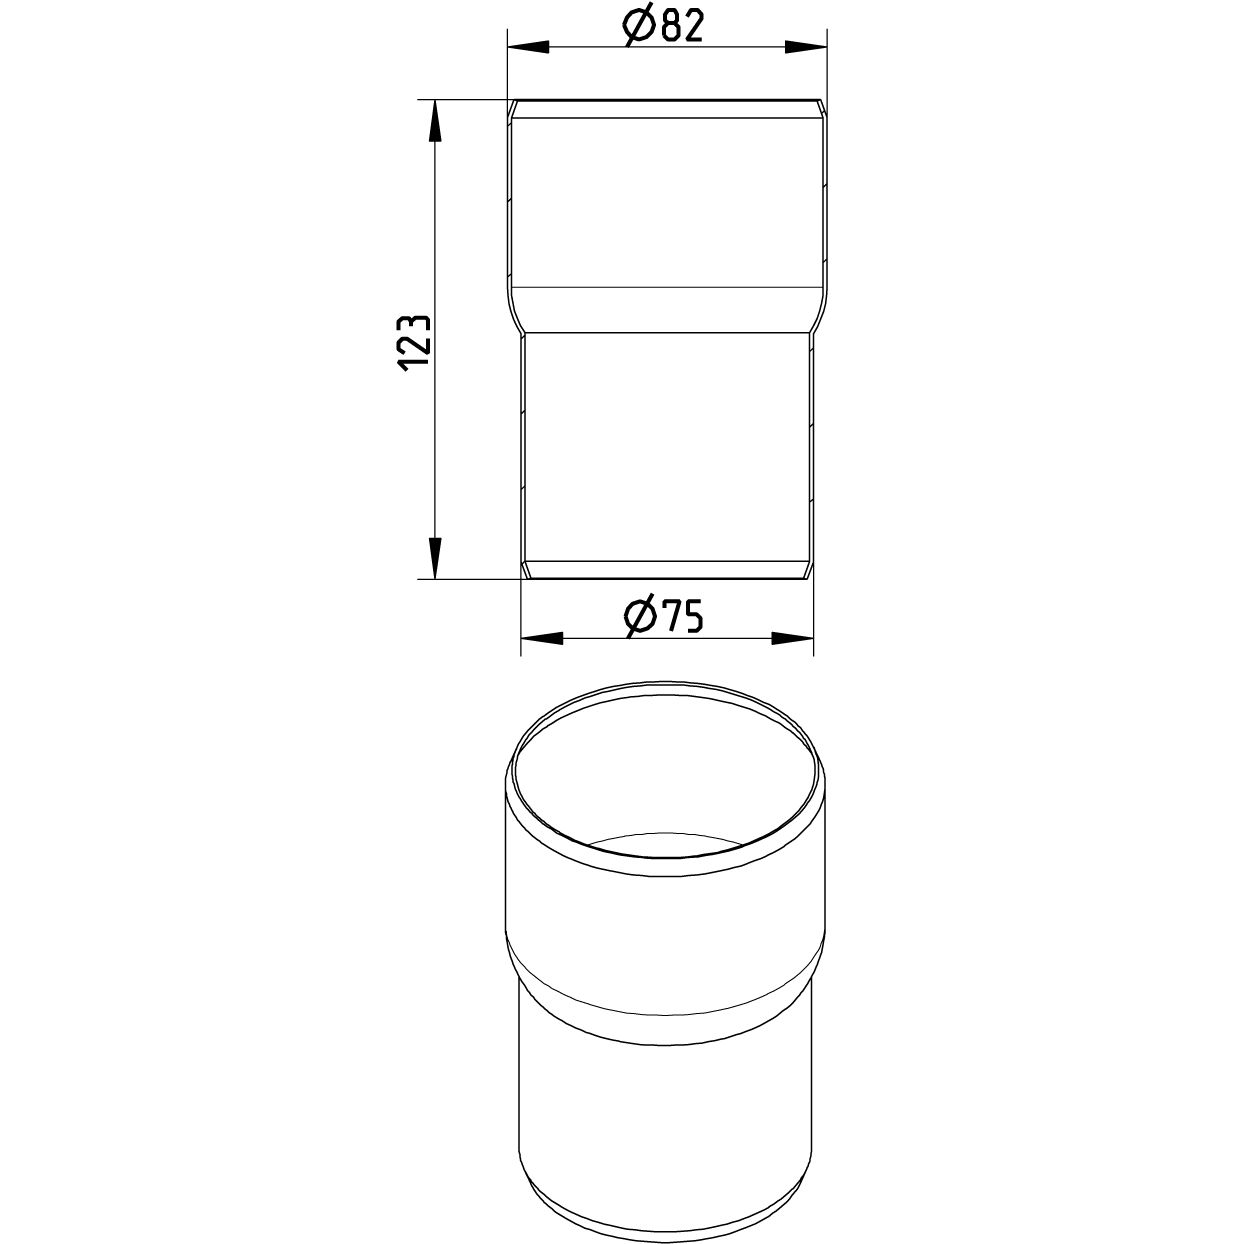 hight resolution of diagram of a pvc pipe